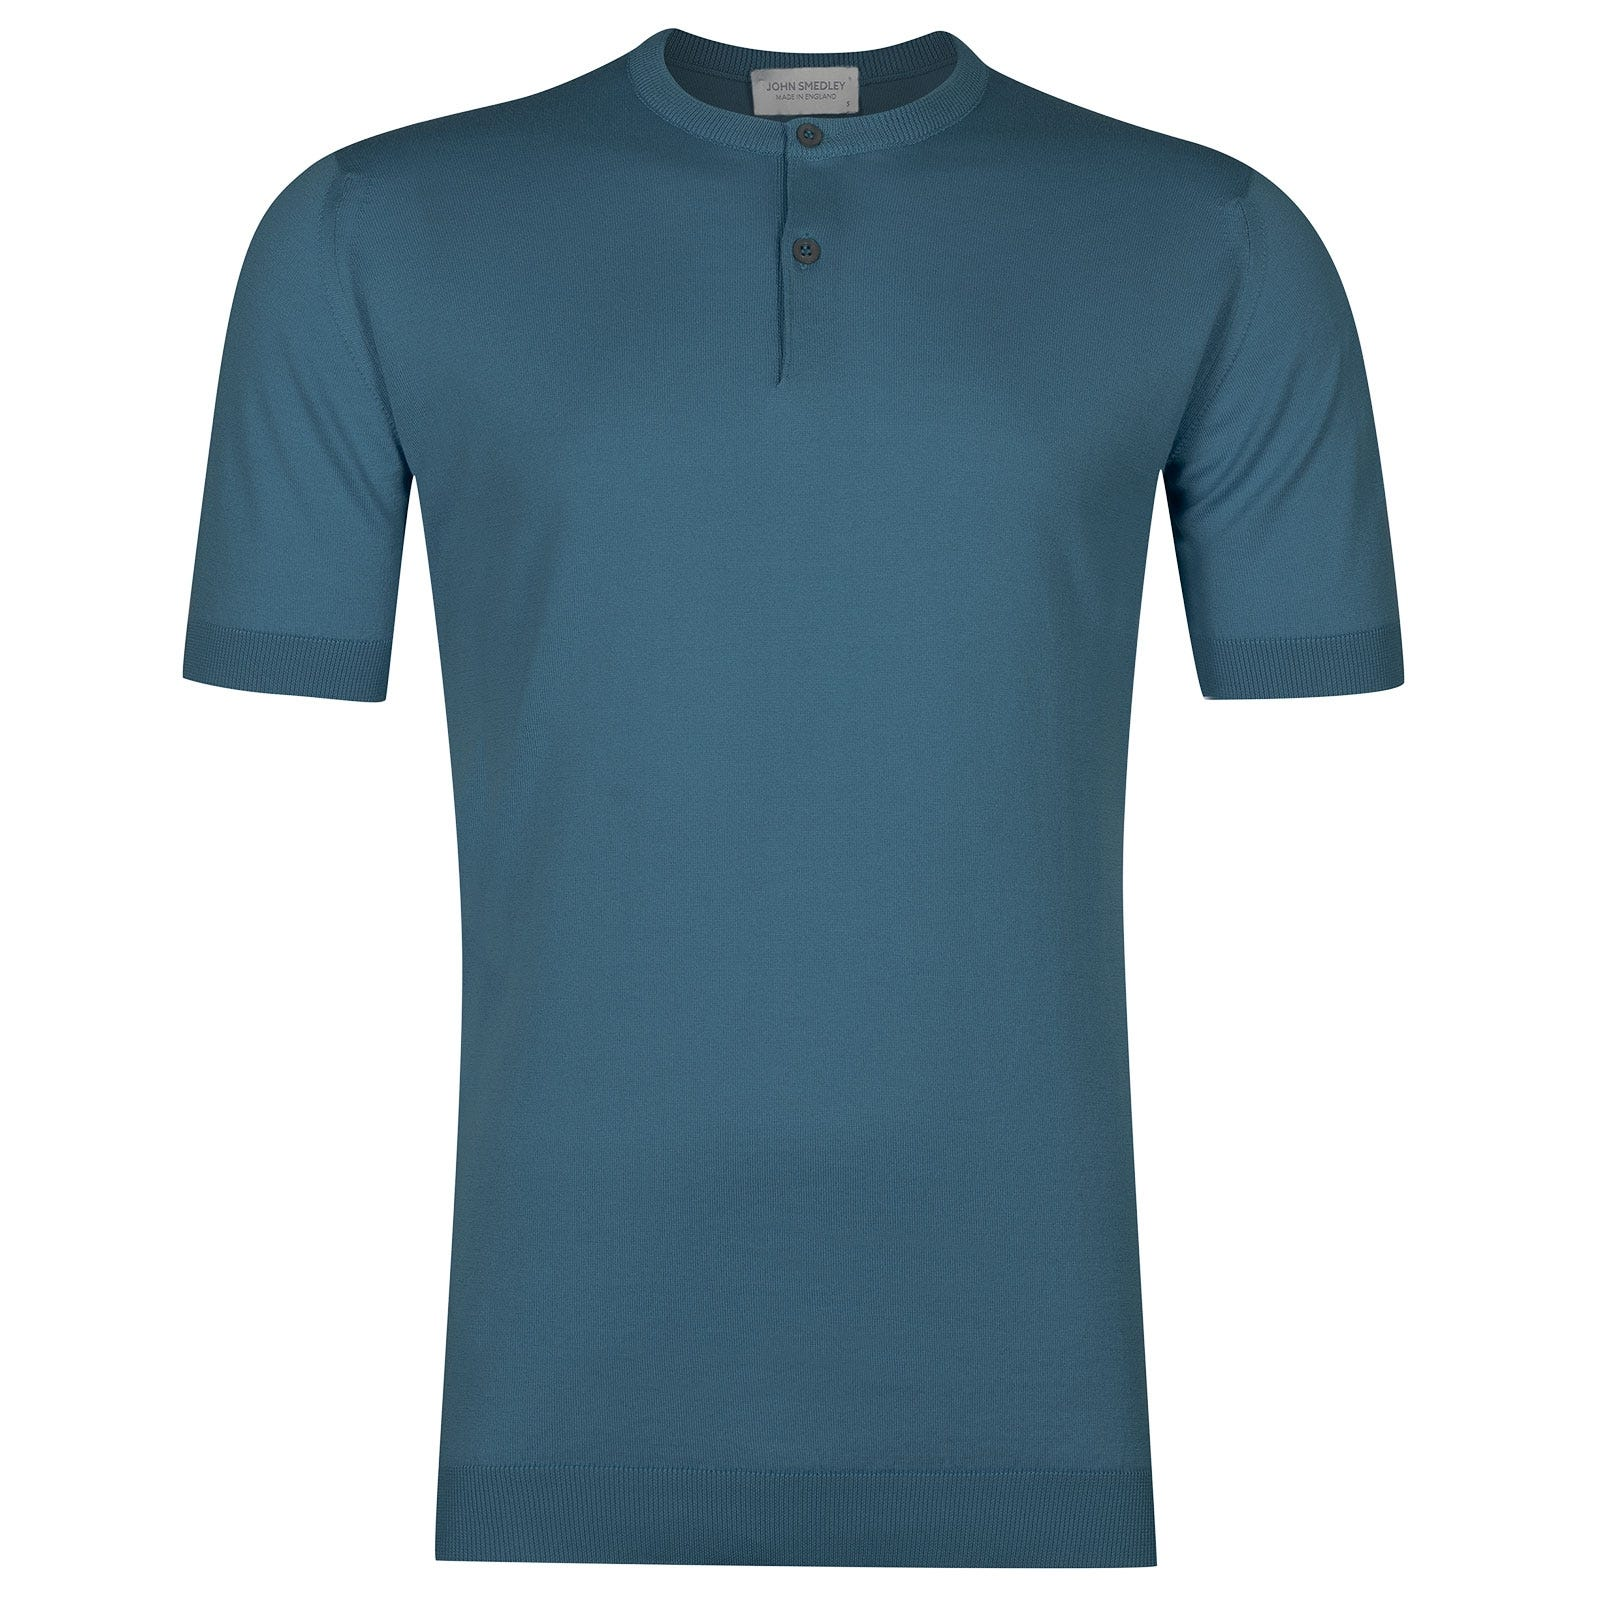 John Smedley Bennett Sea Island Cotton T-shirt in Bias Blue-L